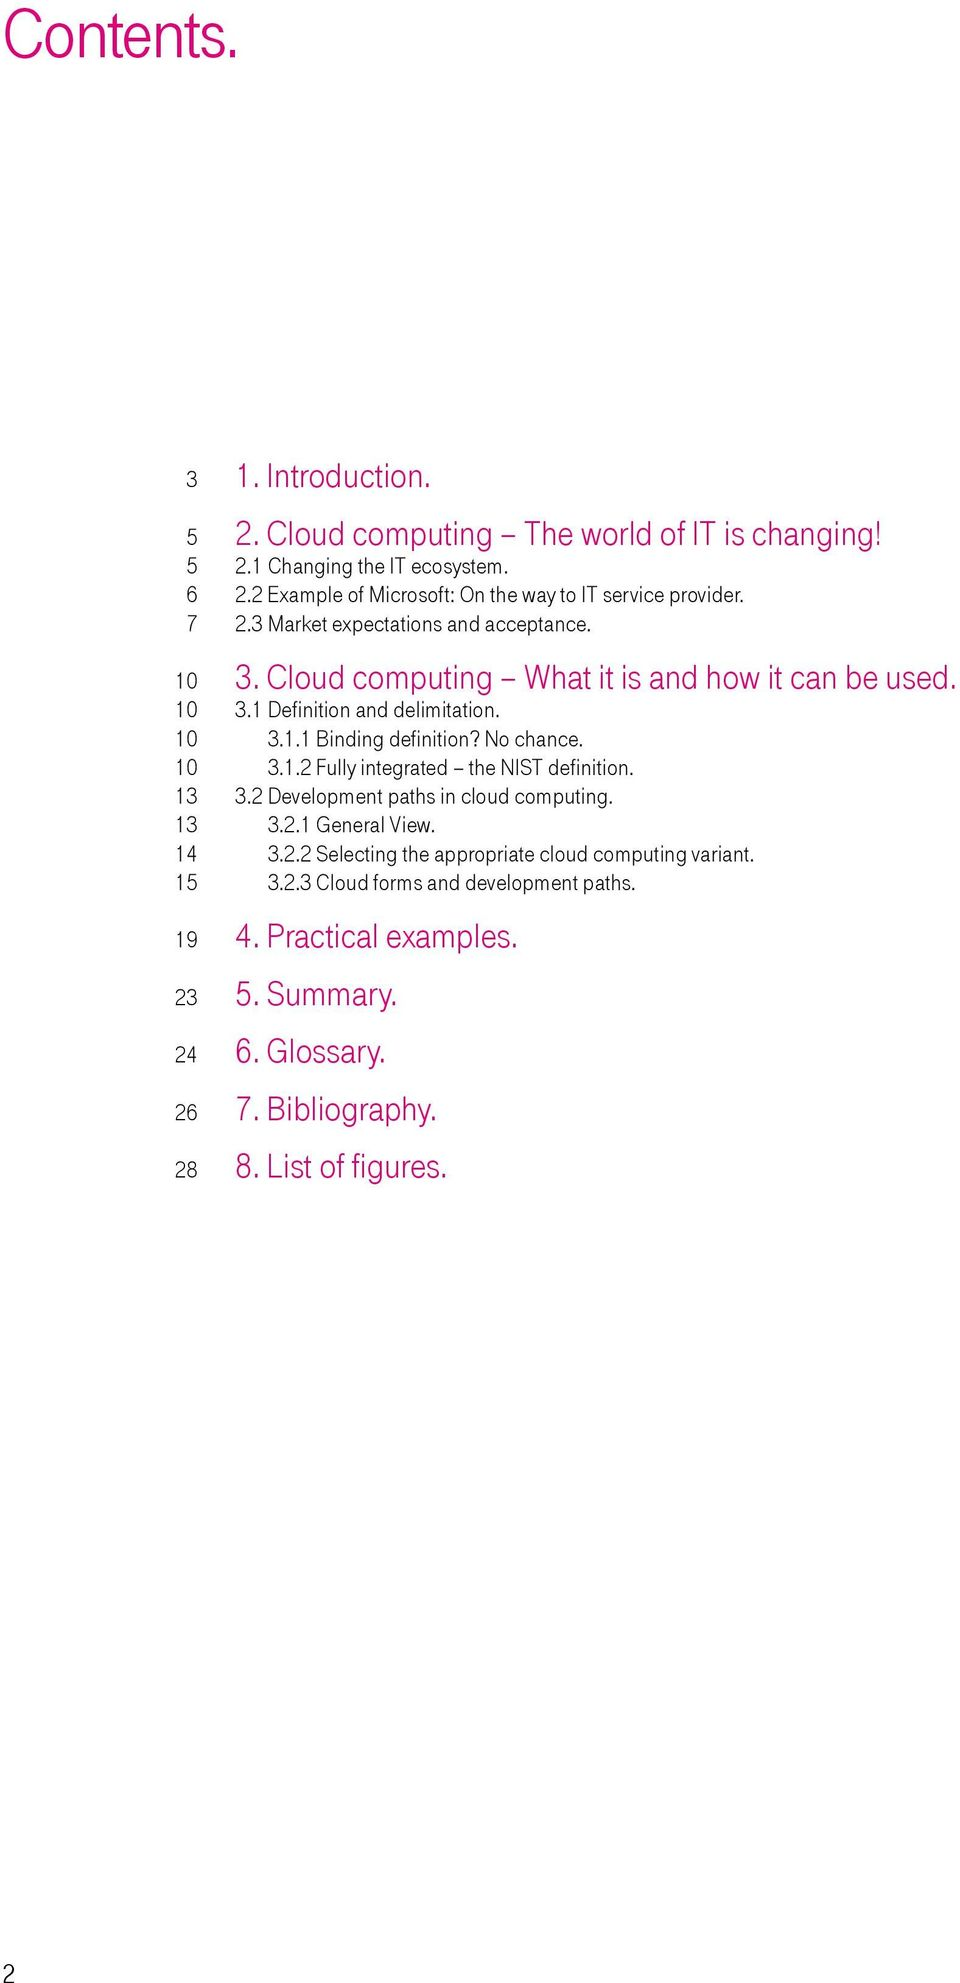 3.2 Development paths in cloud computing. 3.2.1 General View. 3.2.2 Selecting the appropriate cloud computing variant. 3.2.3 Cloud forms and development paths. 4.